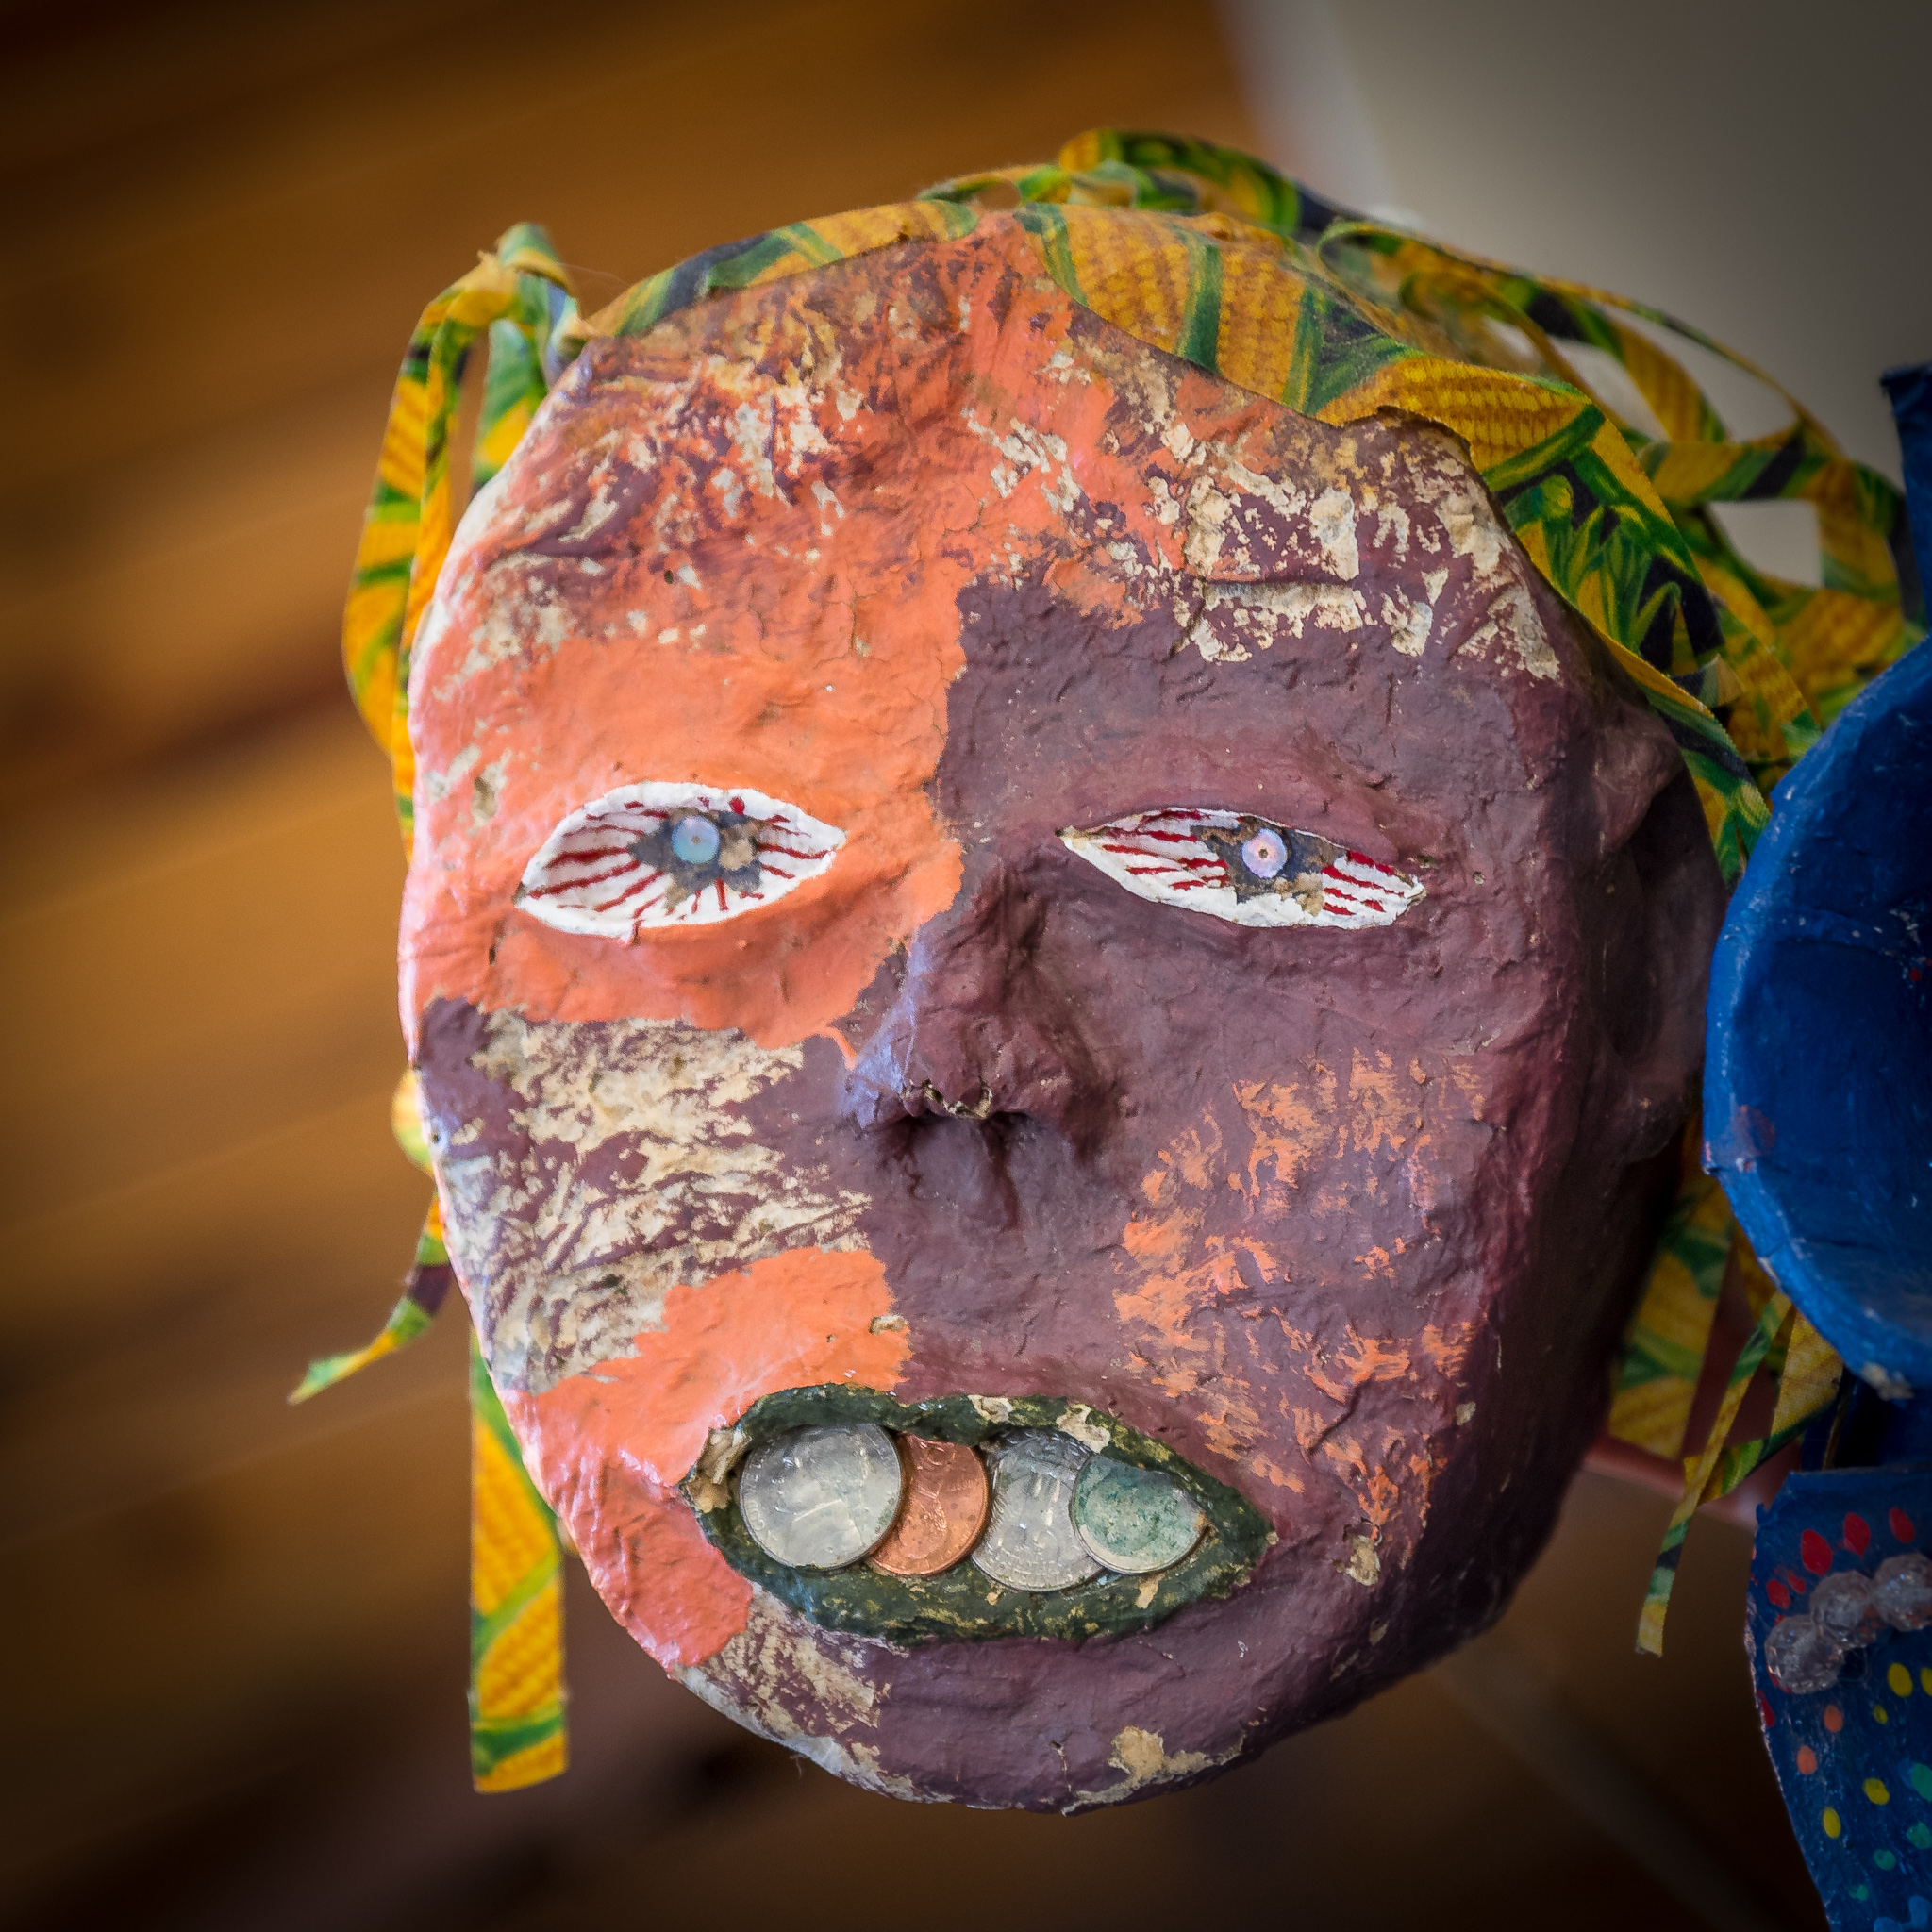 Paper Mache Mask at the Duluth Folk School